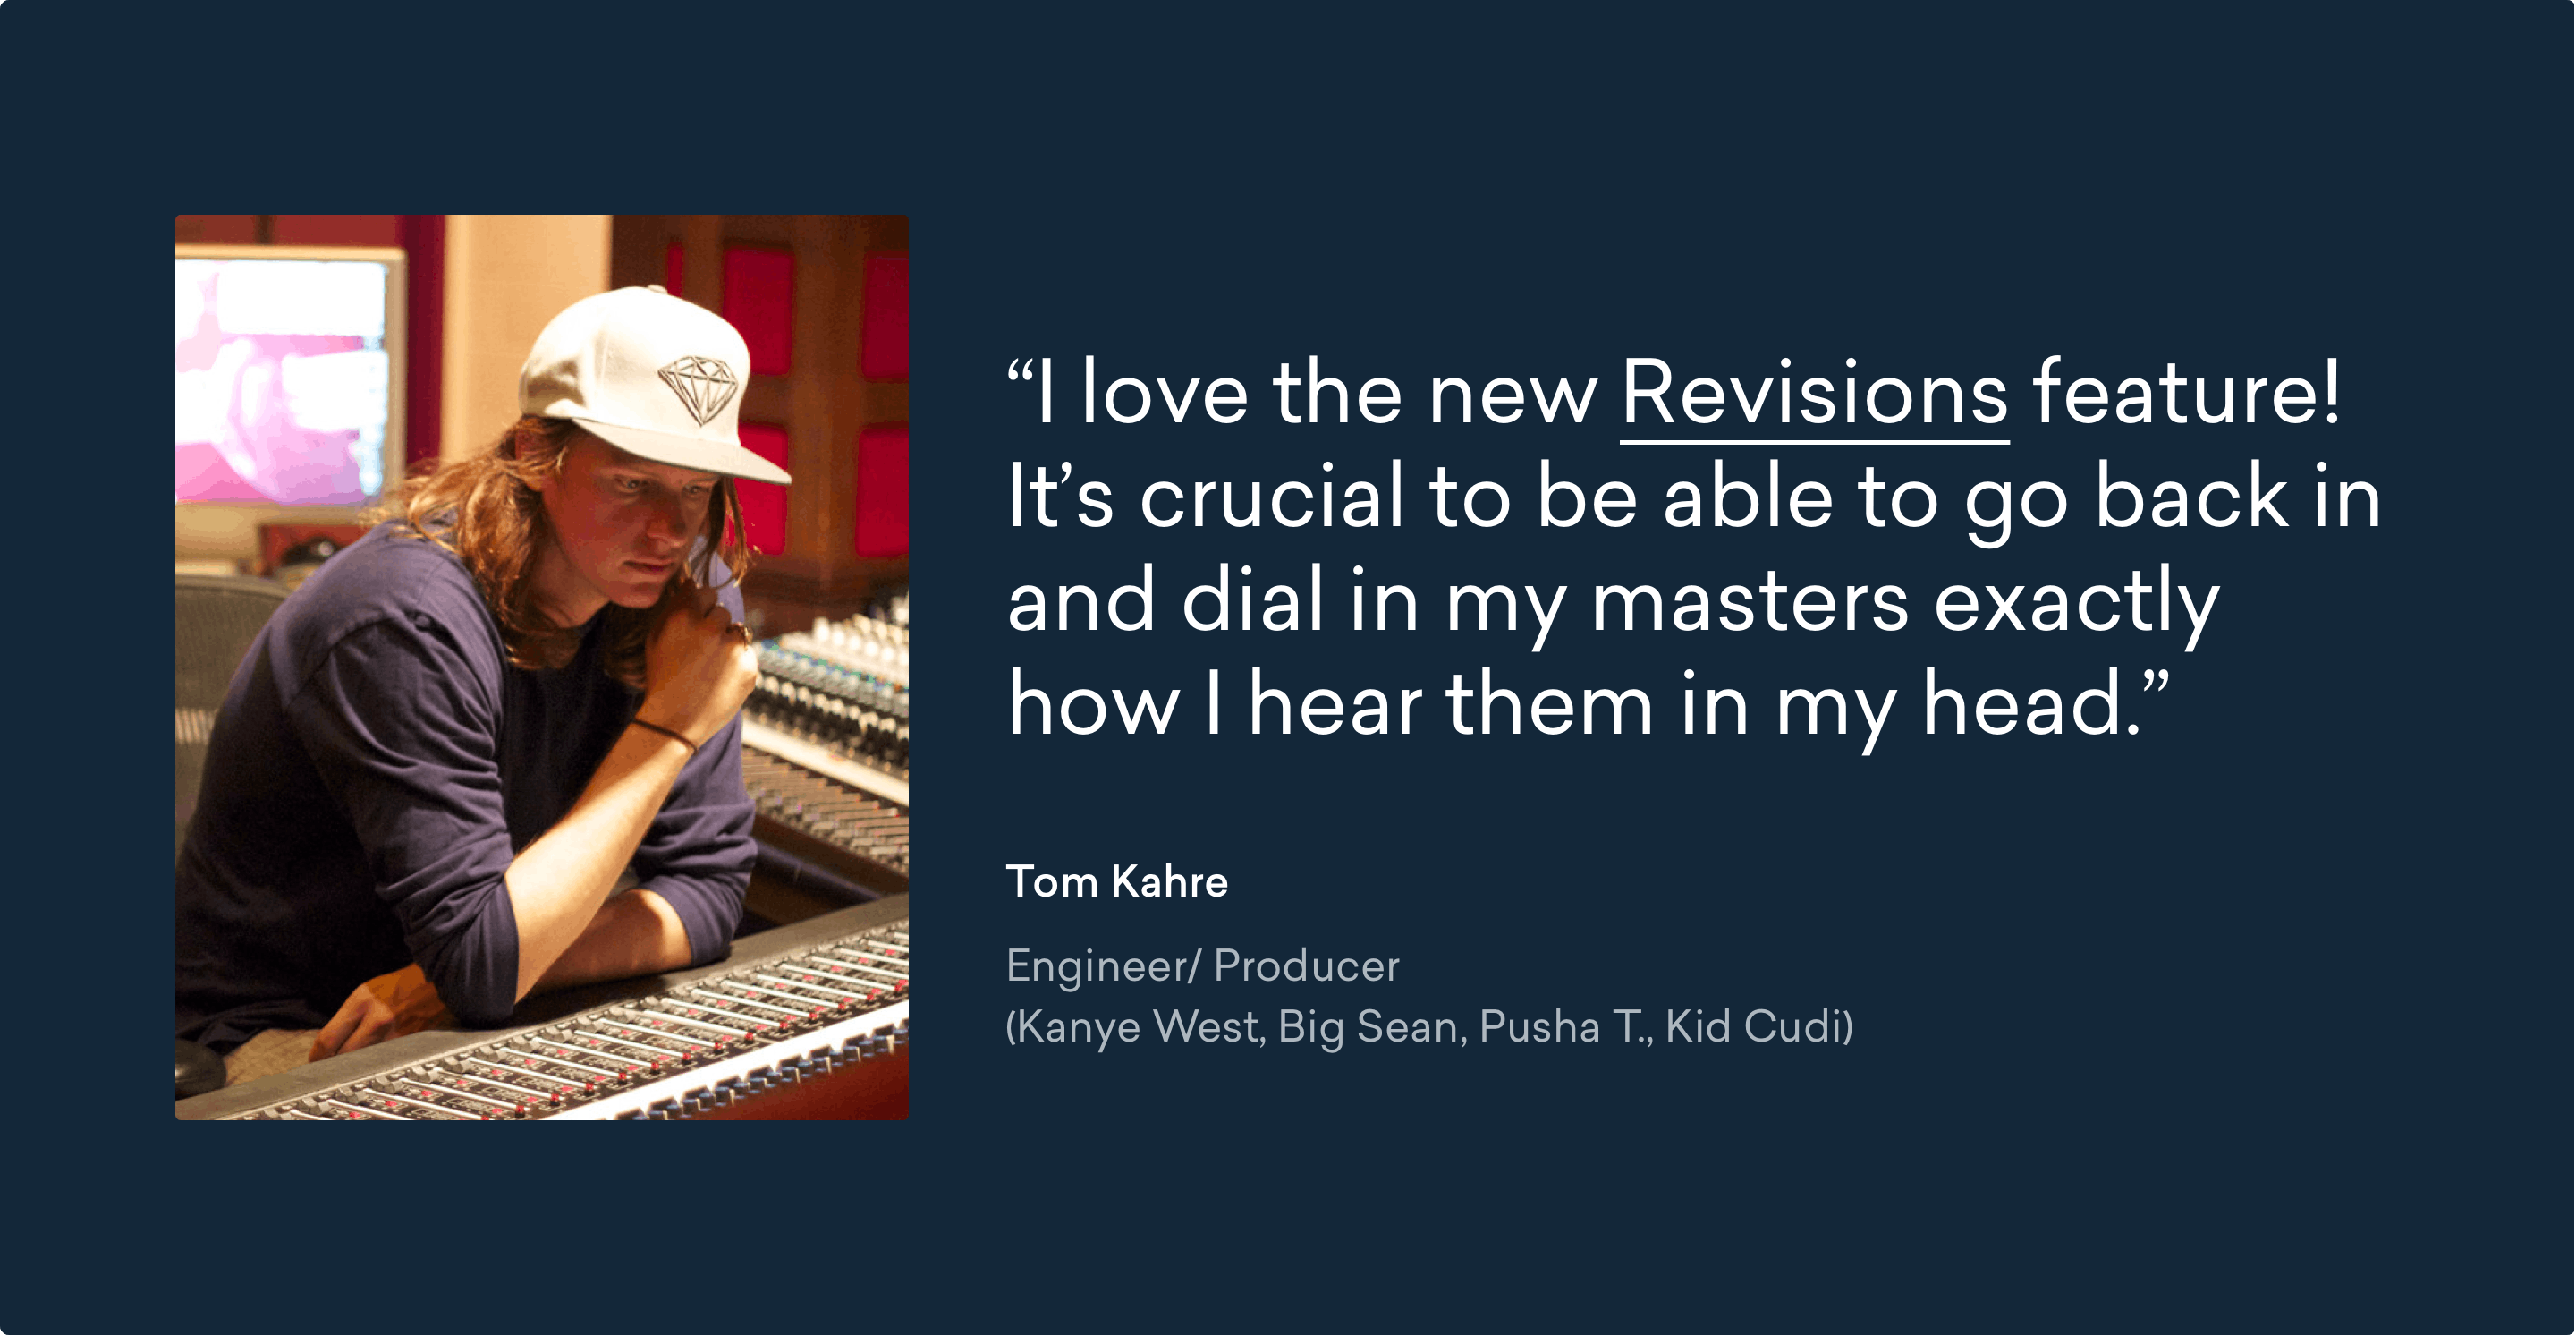 Quote: I love the new Revisions feature! It's crucial to be able to go back in and dial in my masters exactly how I hear them in my head. - Tom Kahre (Engineer/ Producer for Kanye West, Big Sean, Pusha T., Kid Cudi)